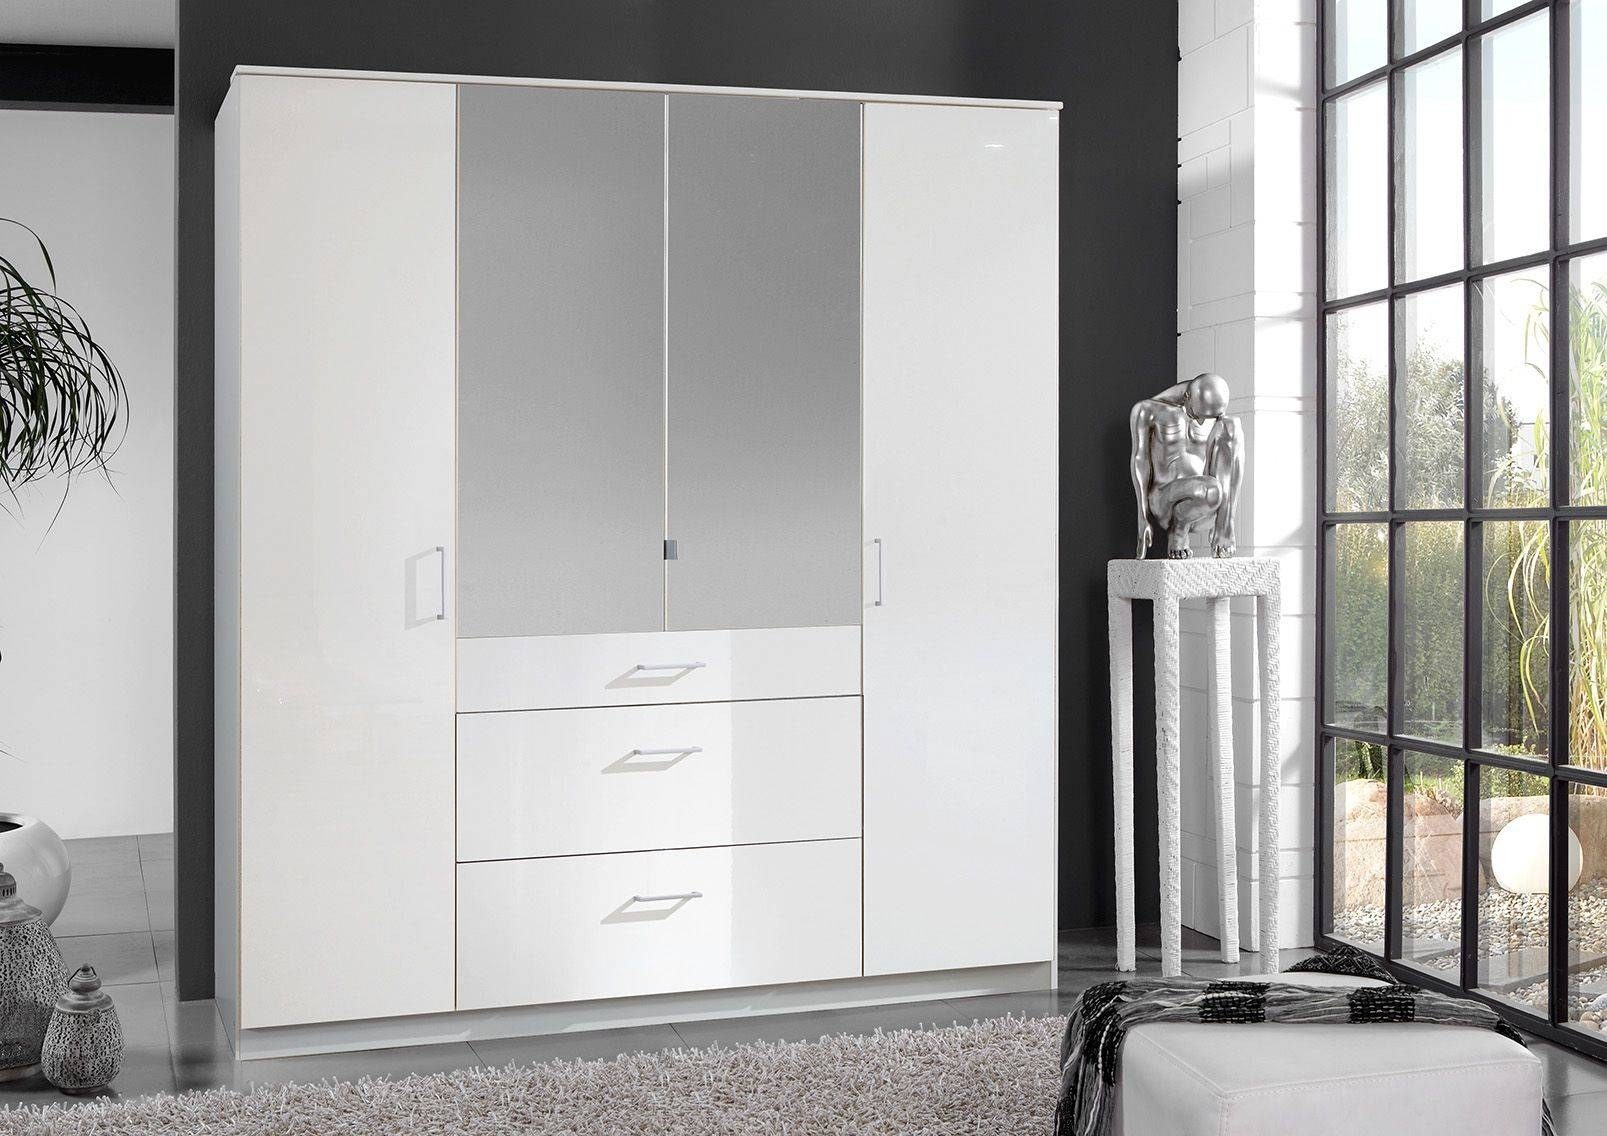 Clack High Gloss White 4 Door Mirrored Wardrobe in White Mirrored Wardrobes (Image 2 of 15)